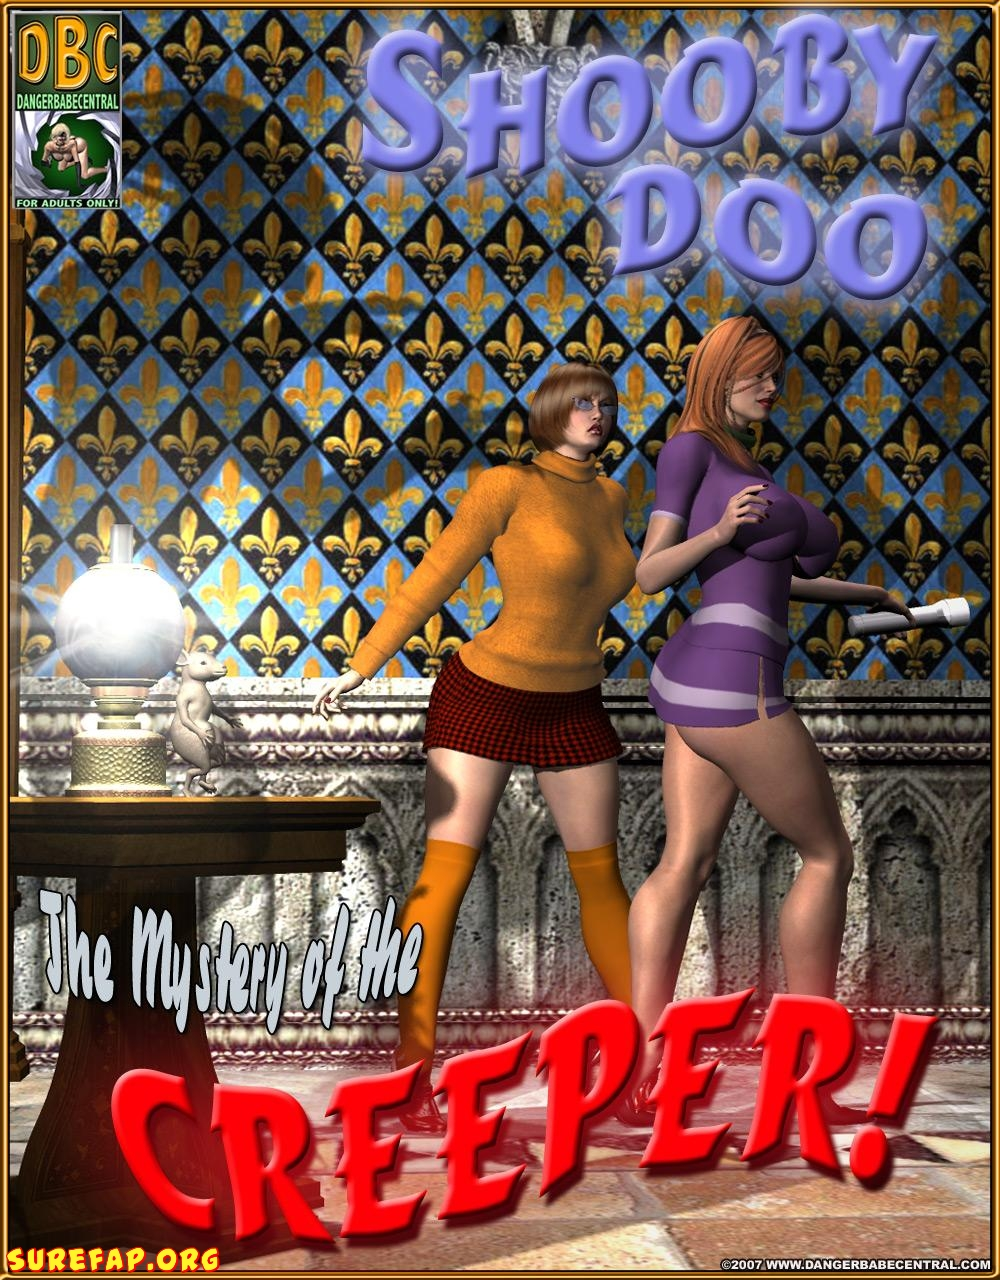 surefap.org__The-Mystery-of-the-CREEPER-00_Cover_Gotofap_552864795_1307321061.jpg